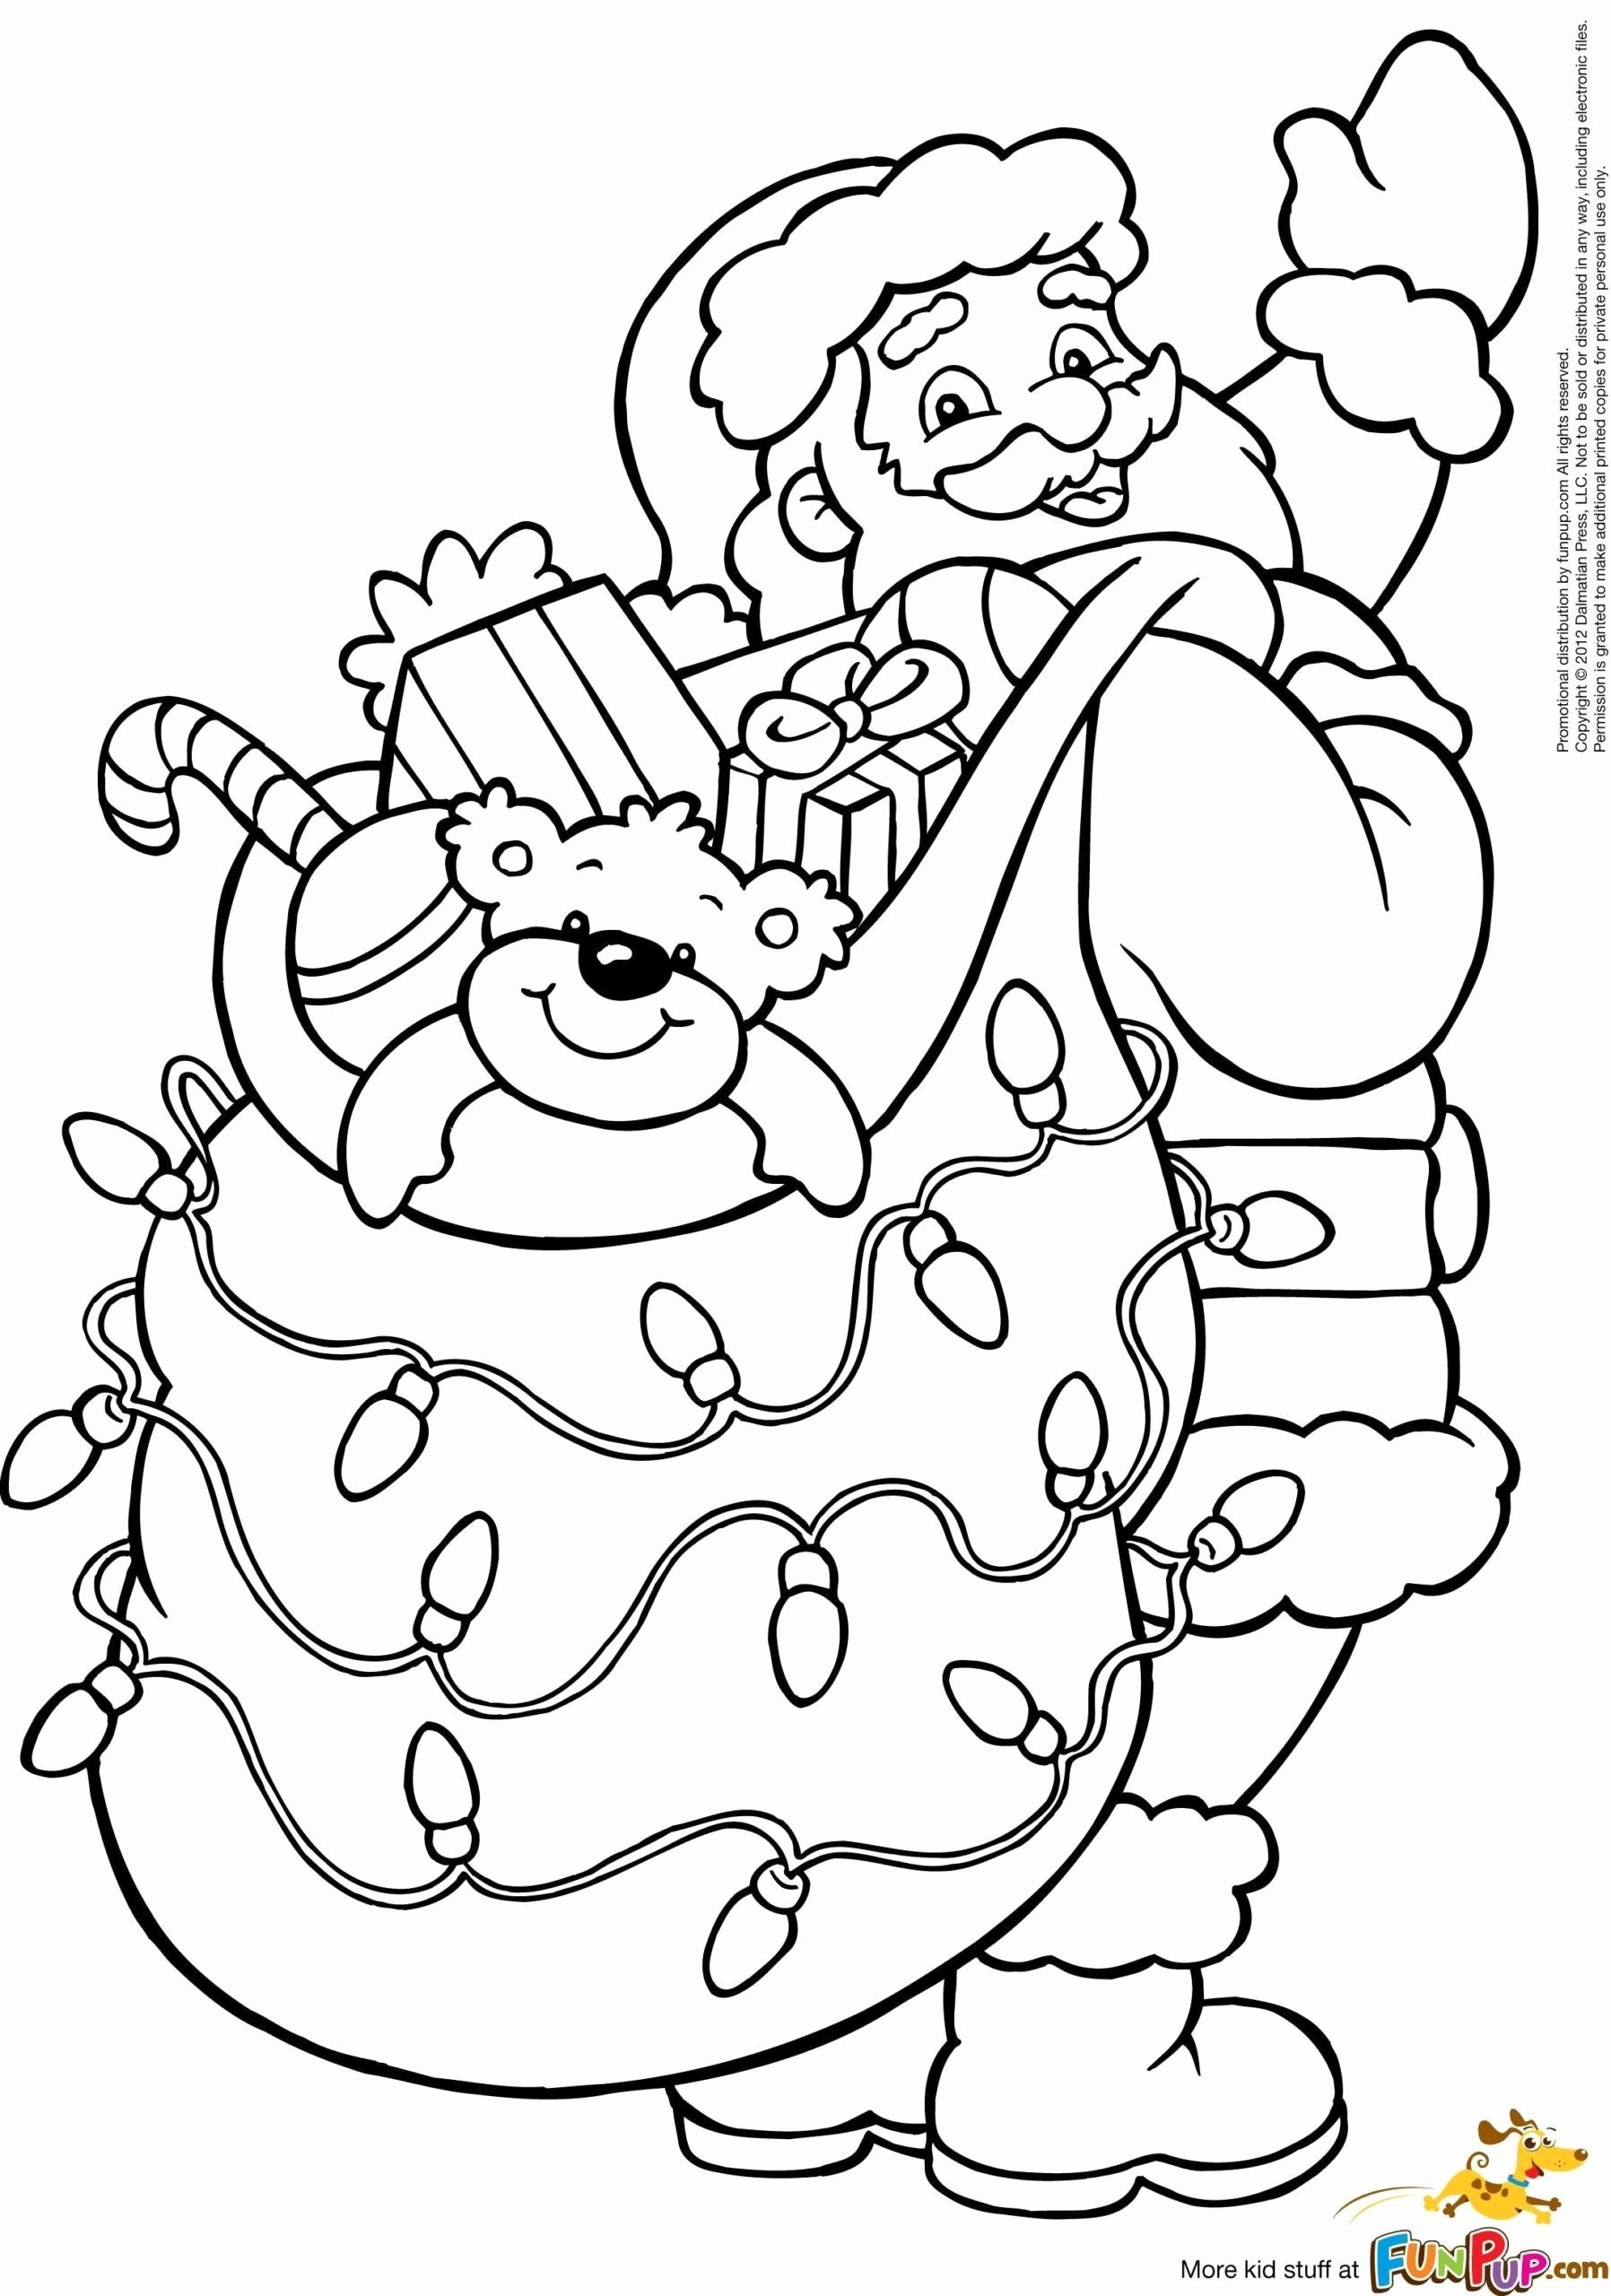 Xmas Coloring Sheets Printable Luxury Coloring Pages Ideas